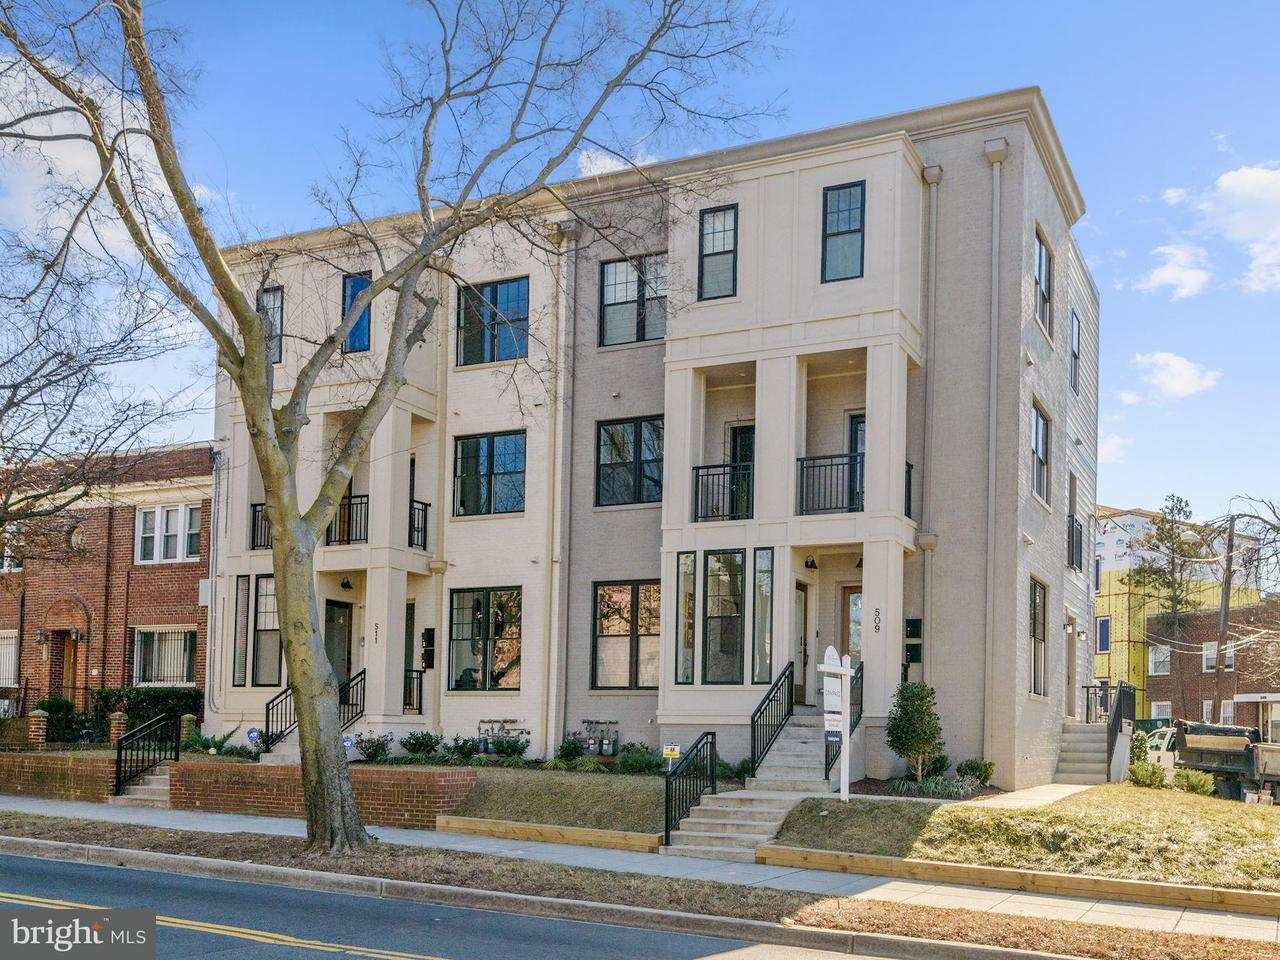 Townhouse for Sale at 509 Franklin St Ne #1 509 Franklin St Ne #1 Washington, District Of Columbia 20017 United States